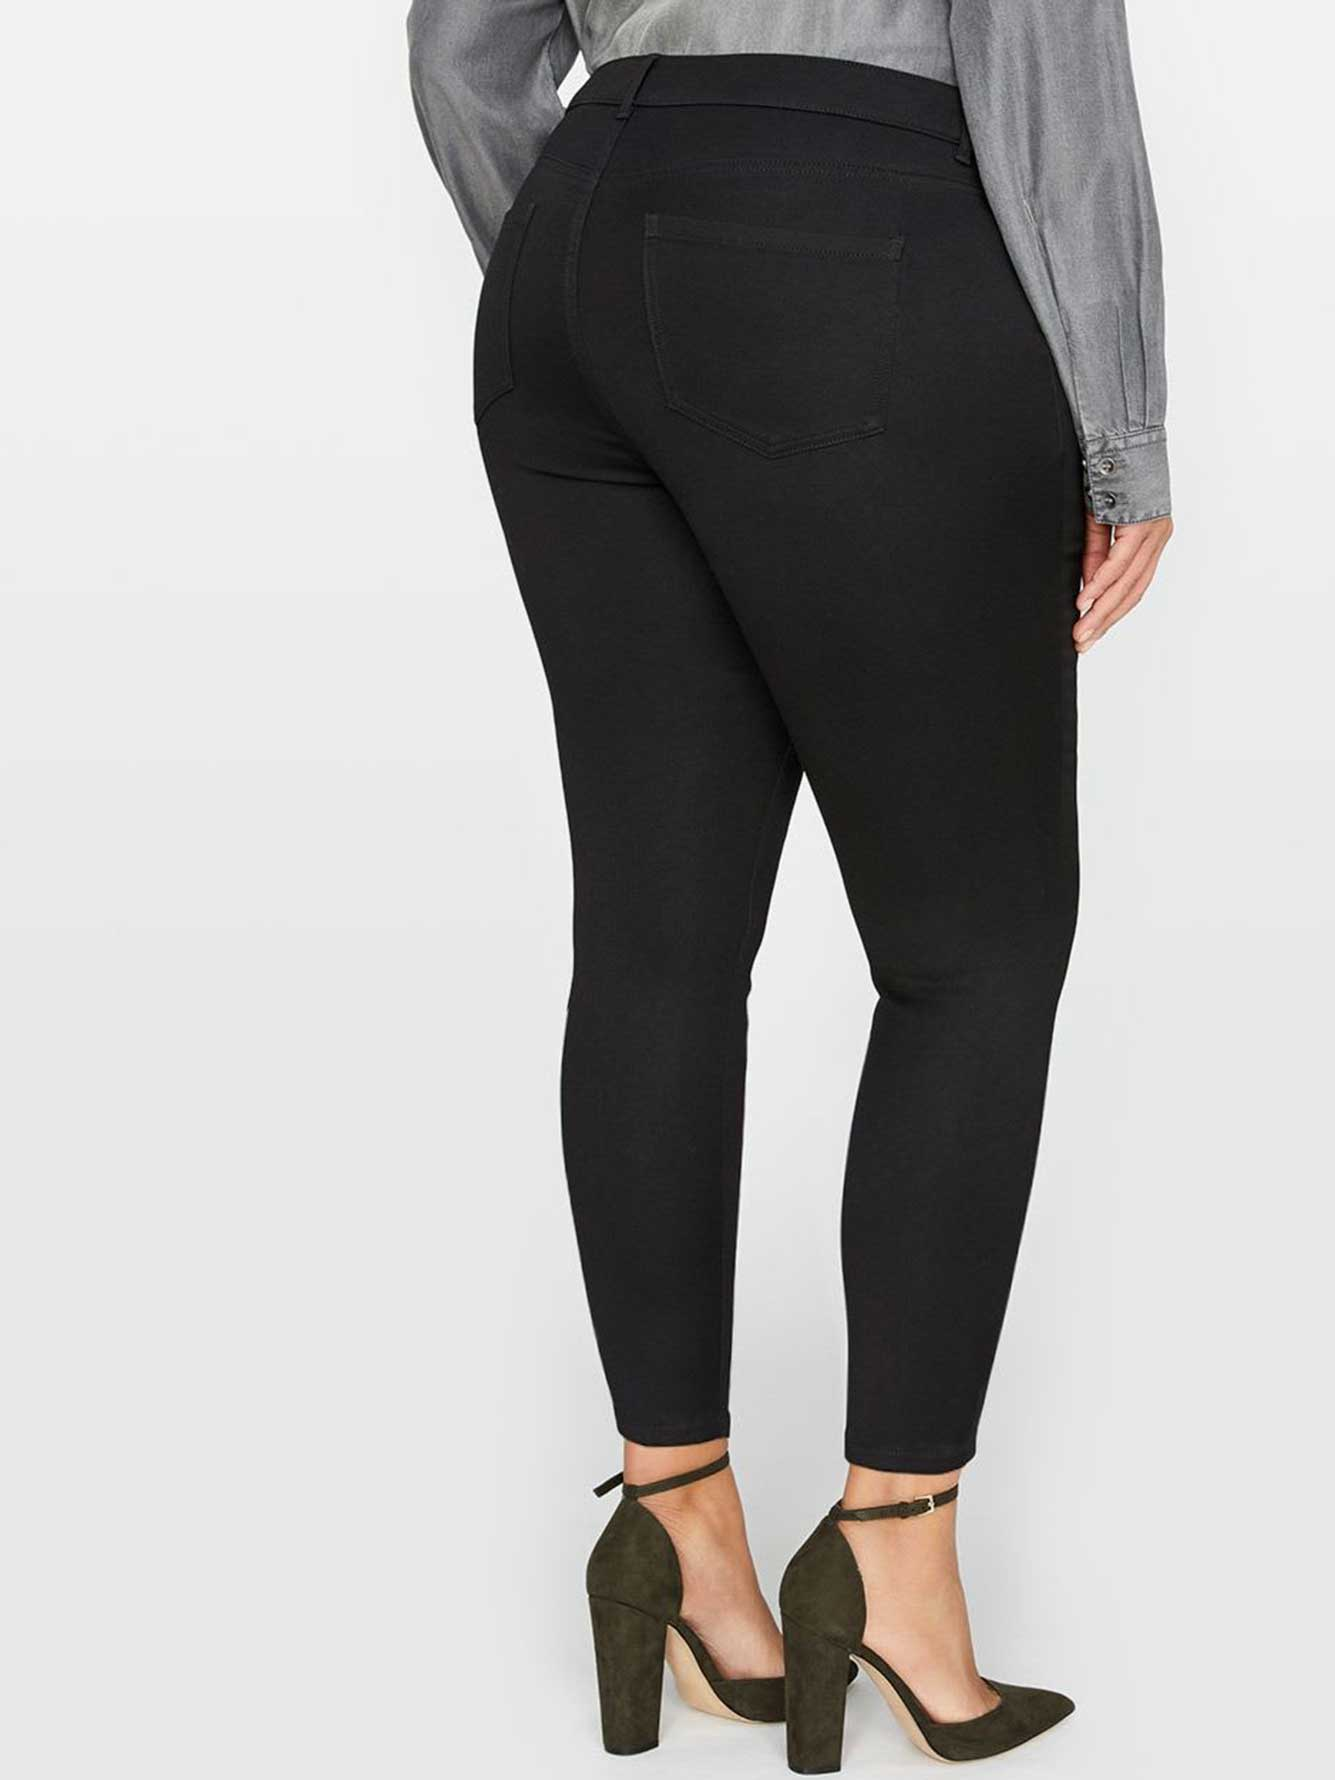 L&L Super Soft Black Jegging, Petite